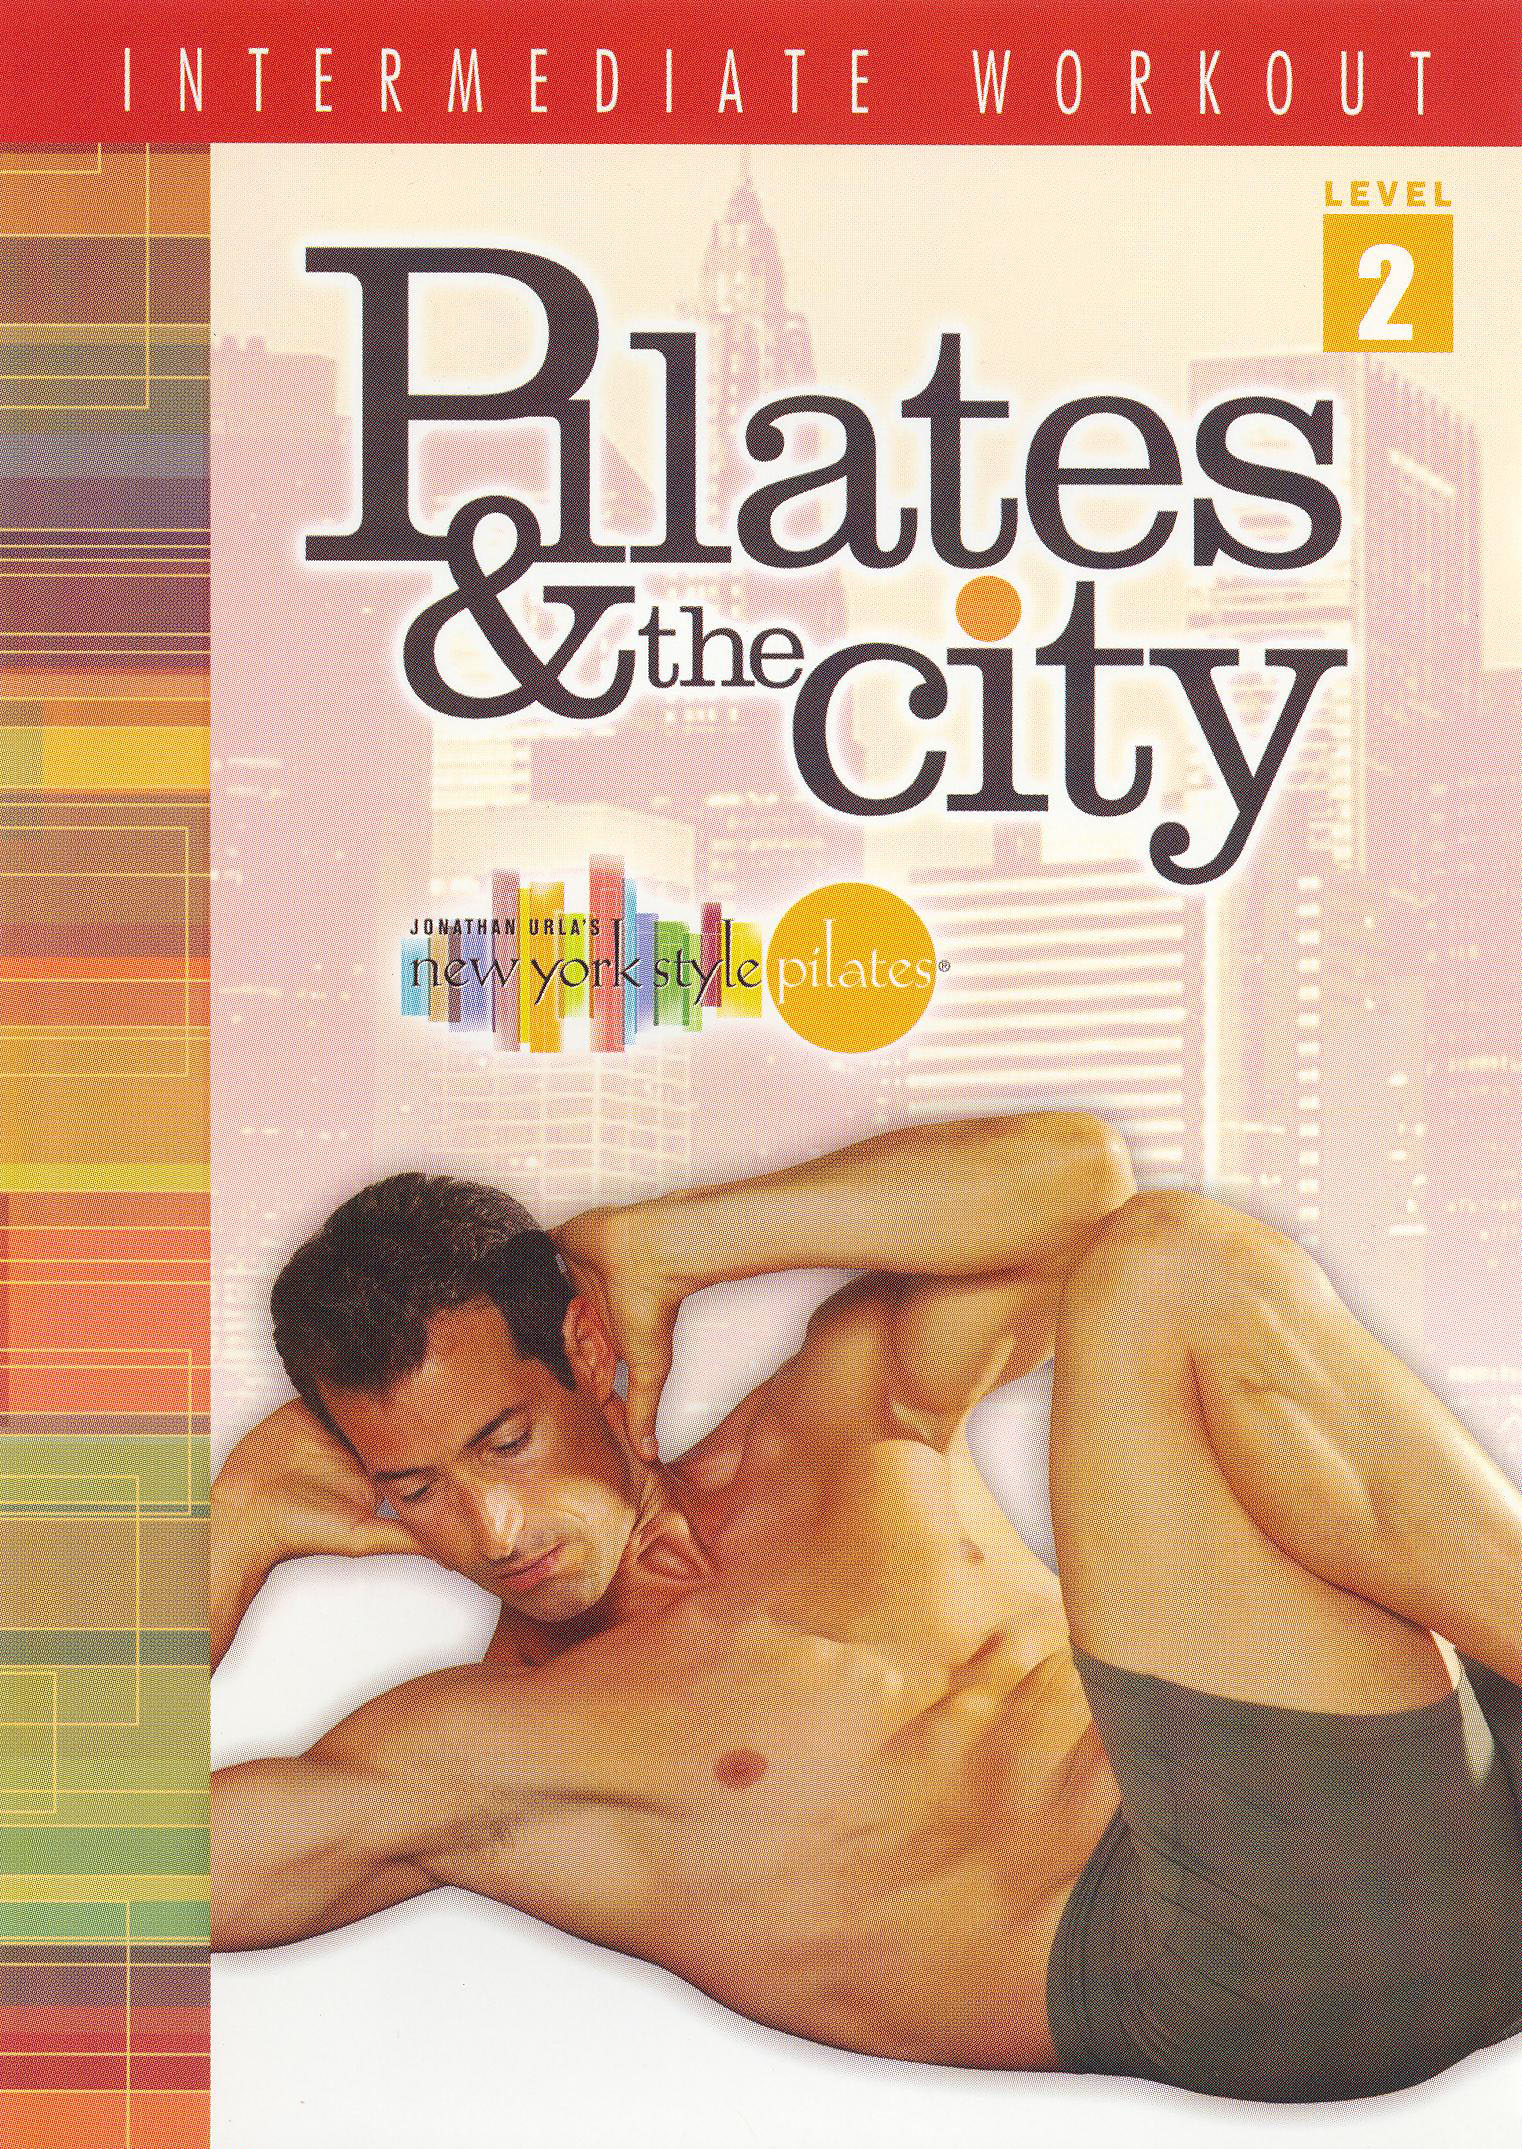 Pilates and the City: Intermediate Workout